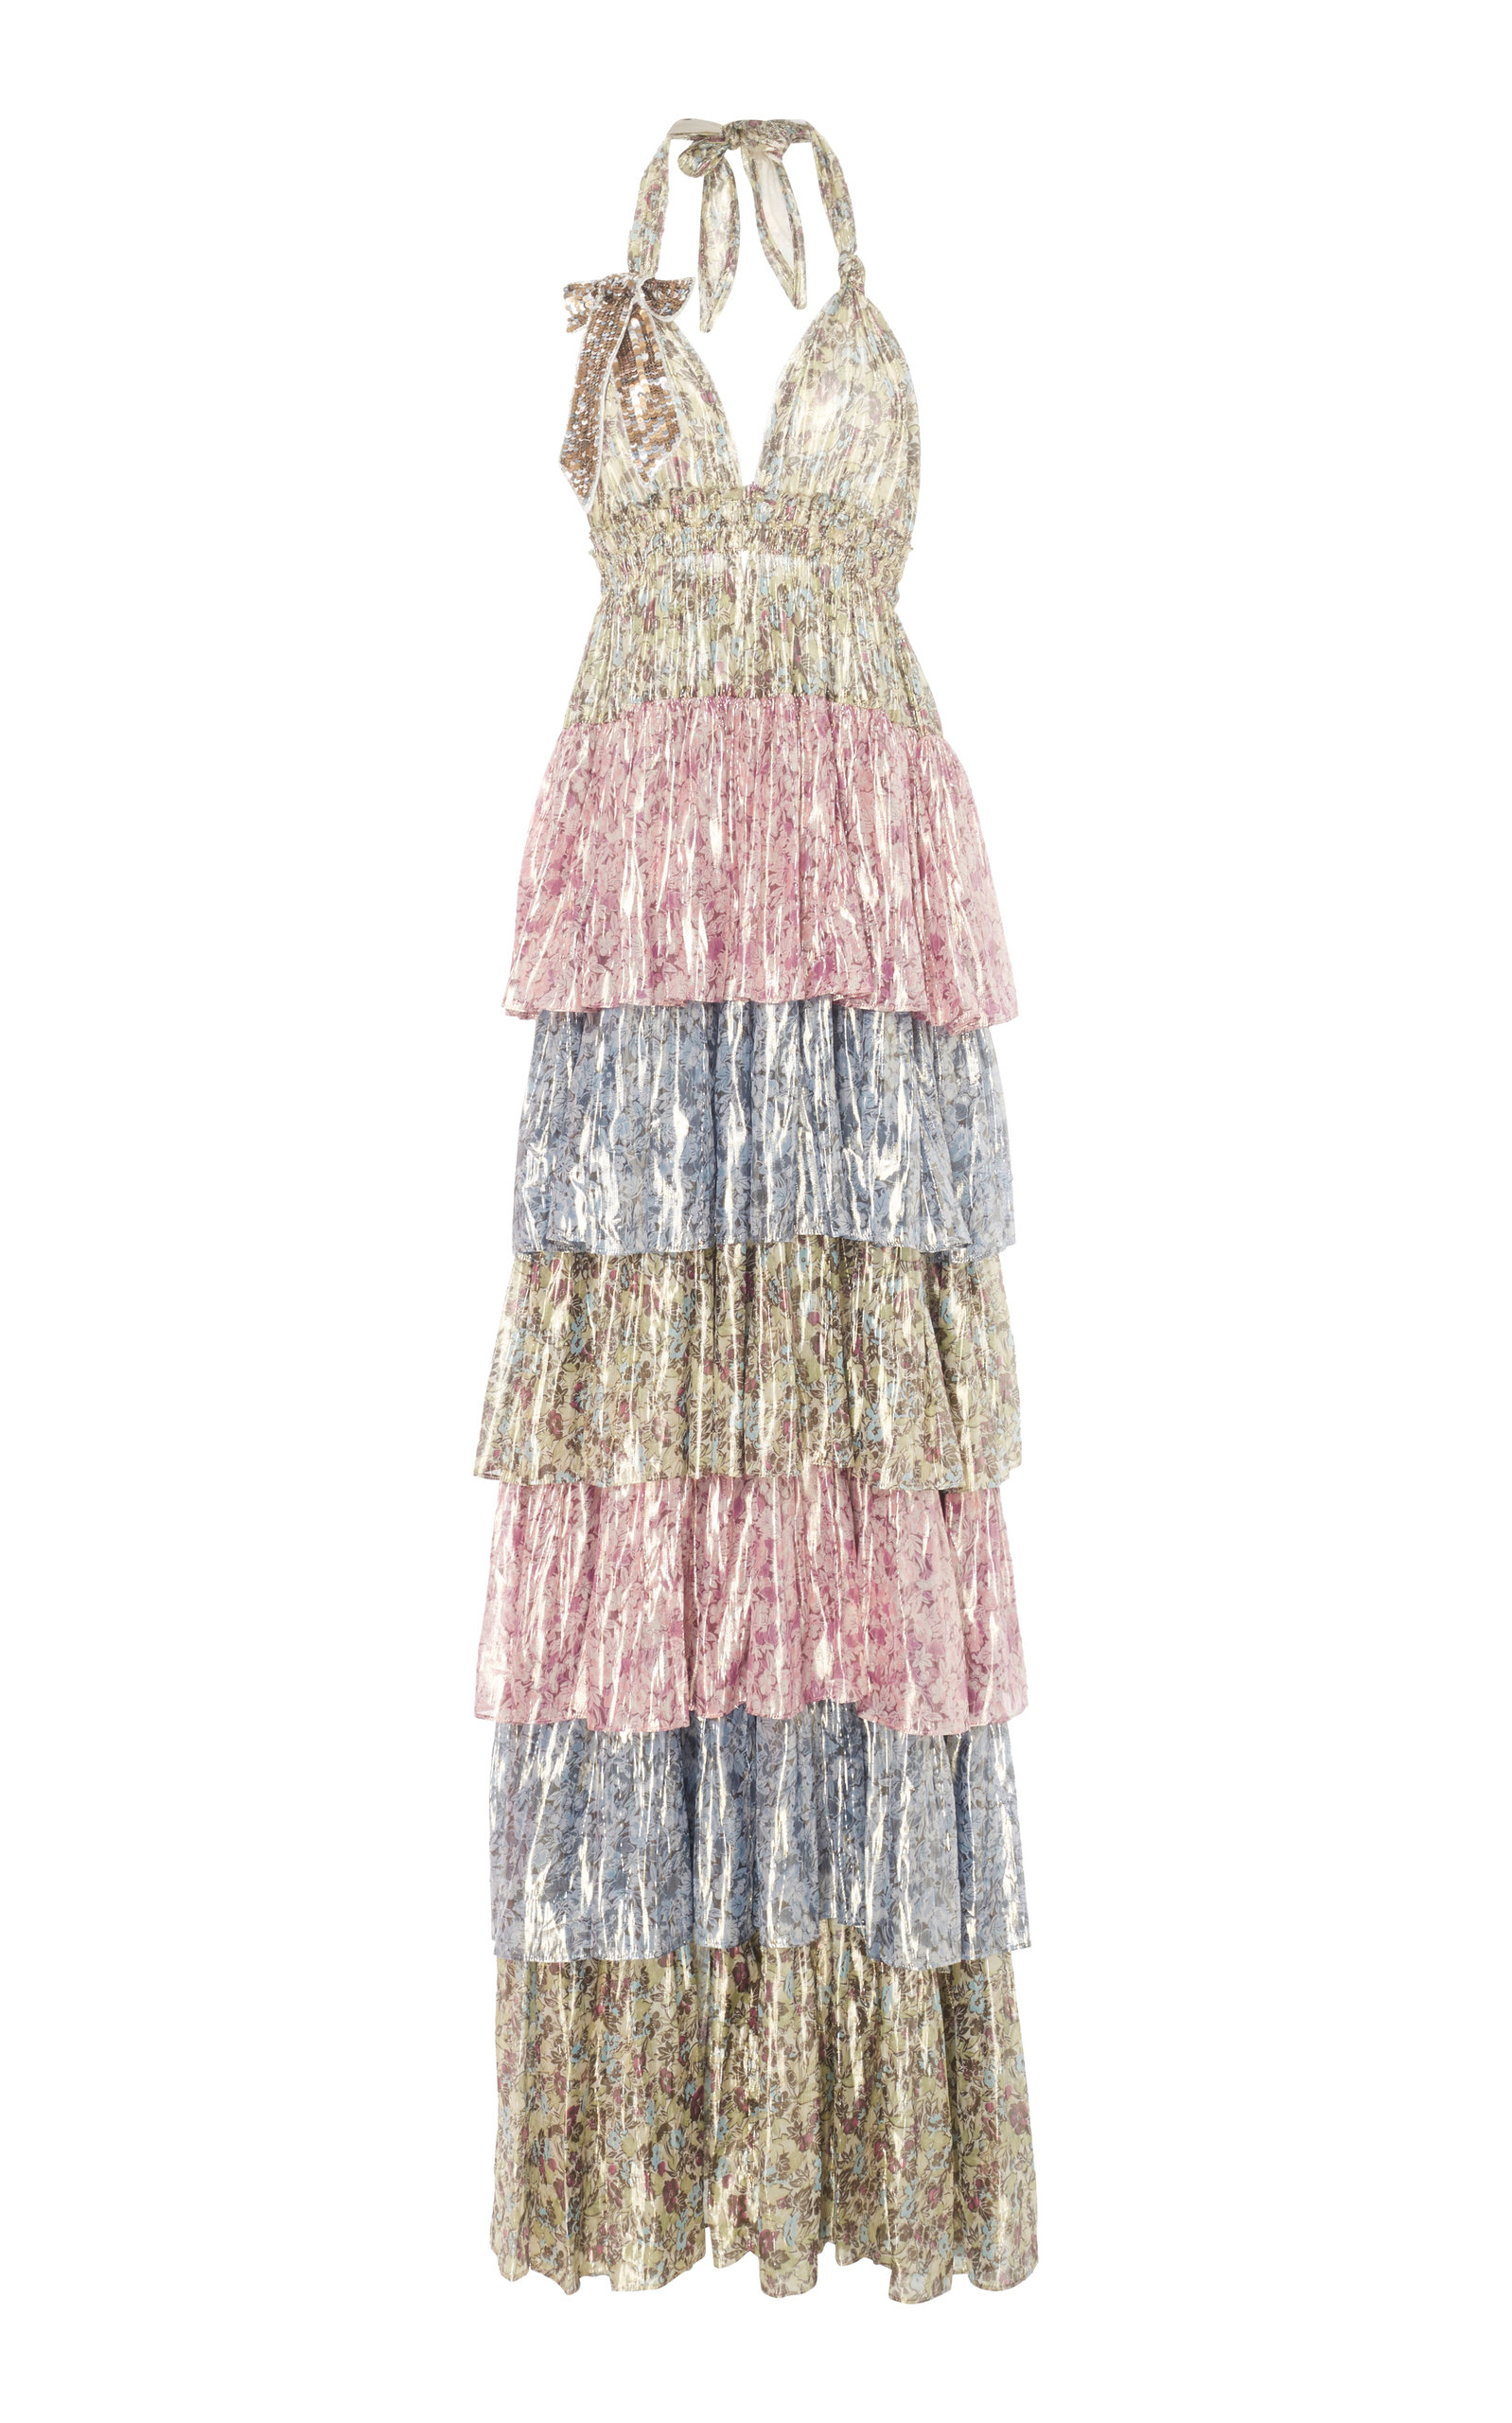 LOVESHACKFANCY Clarissa Tiered Floral Silk-Blend Lamé Maxi Dress in Print